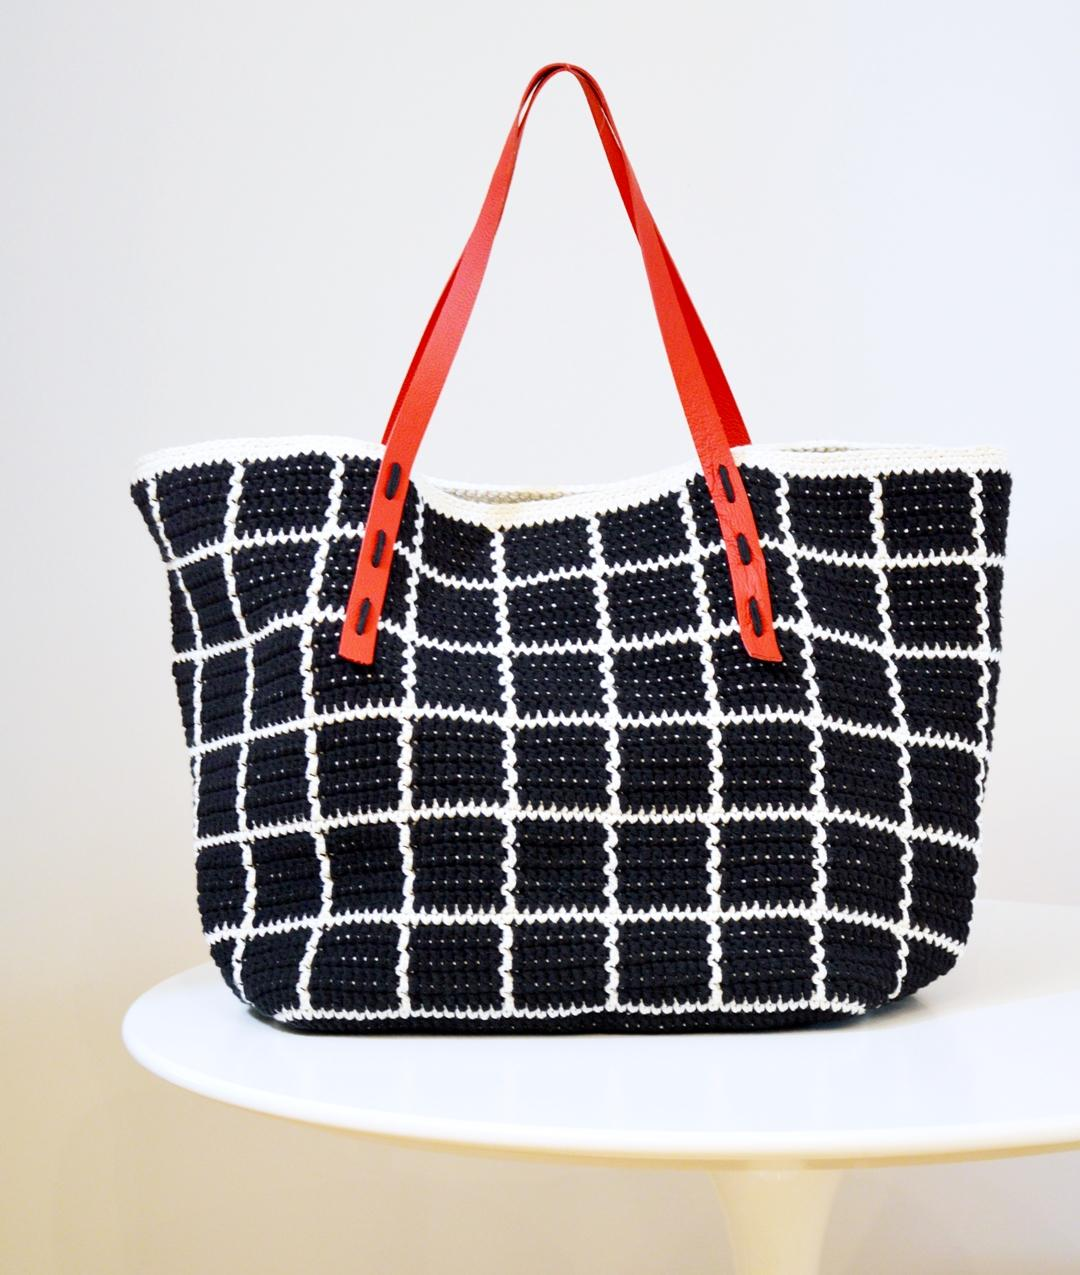 HANDBAGS & CLUTCHES - Cotton - RUUDUKKO BAG - 1